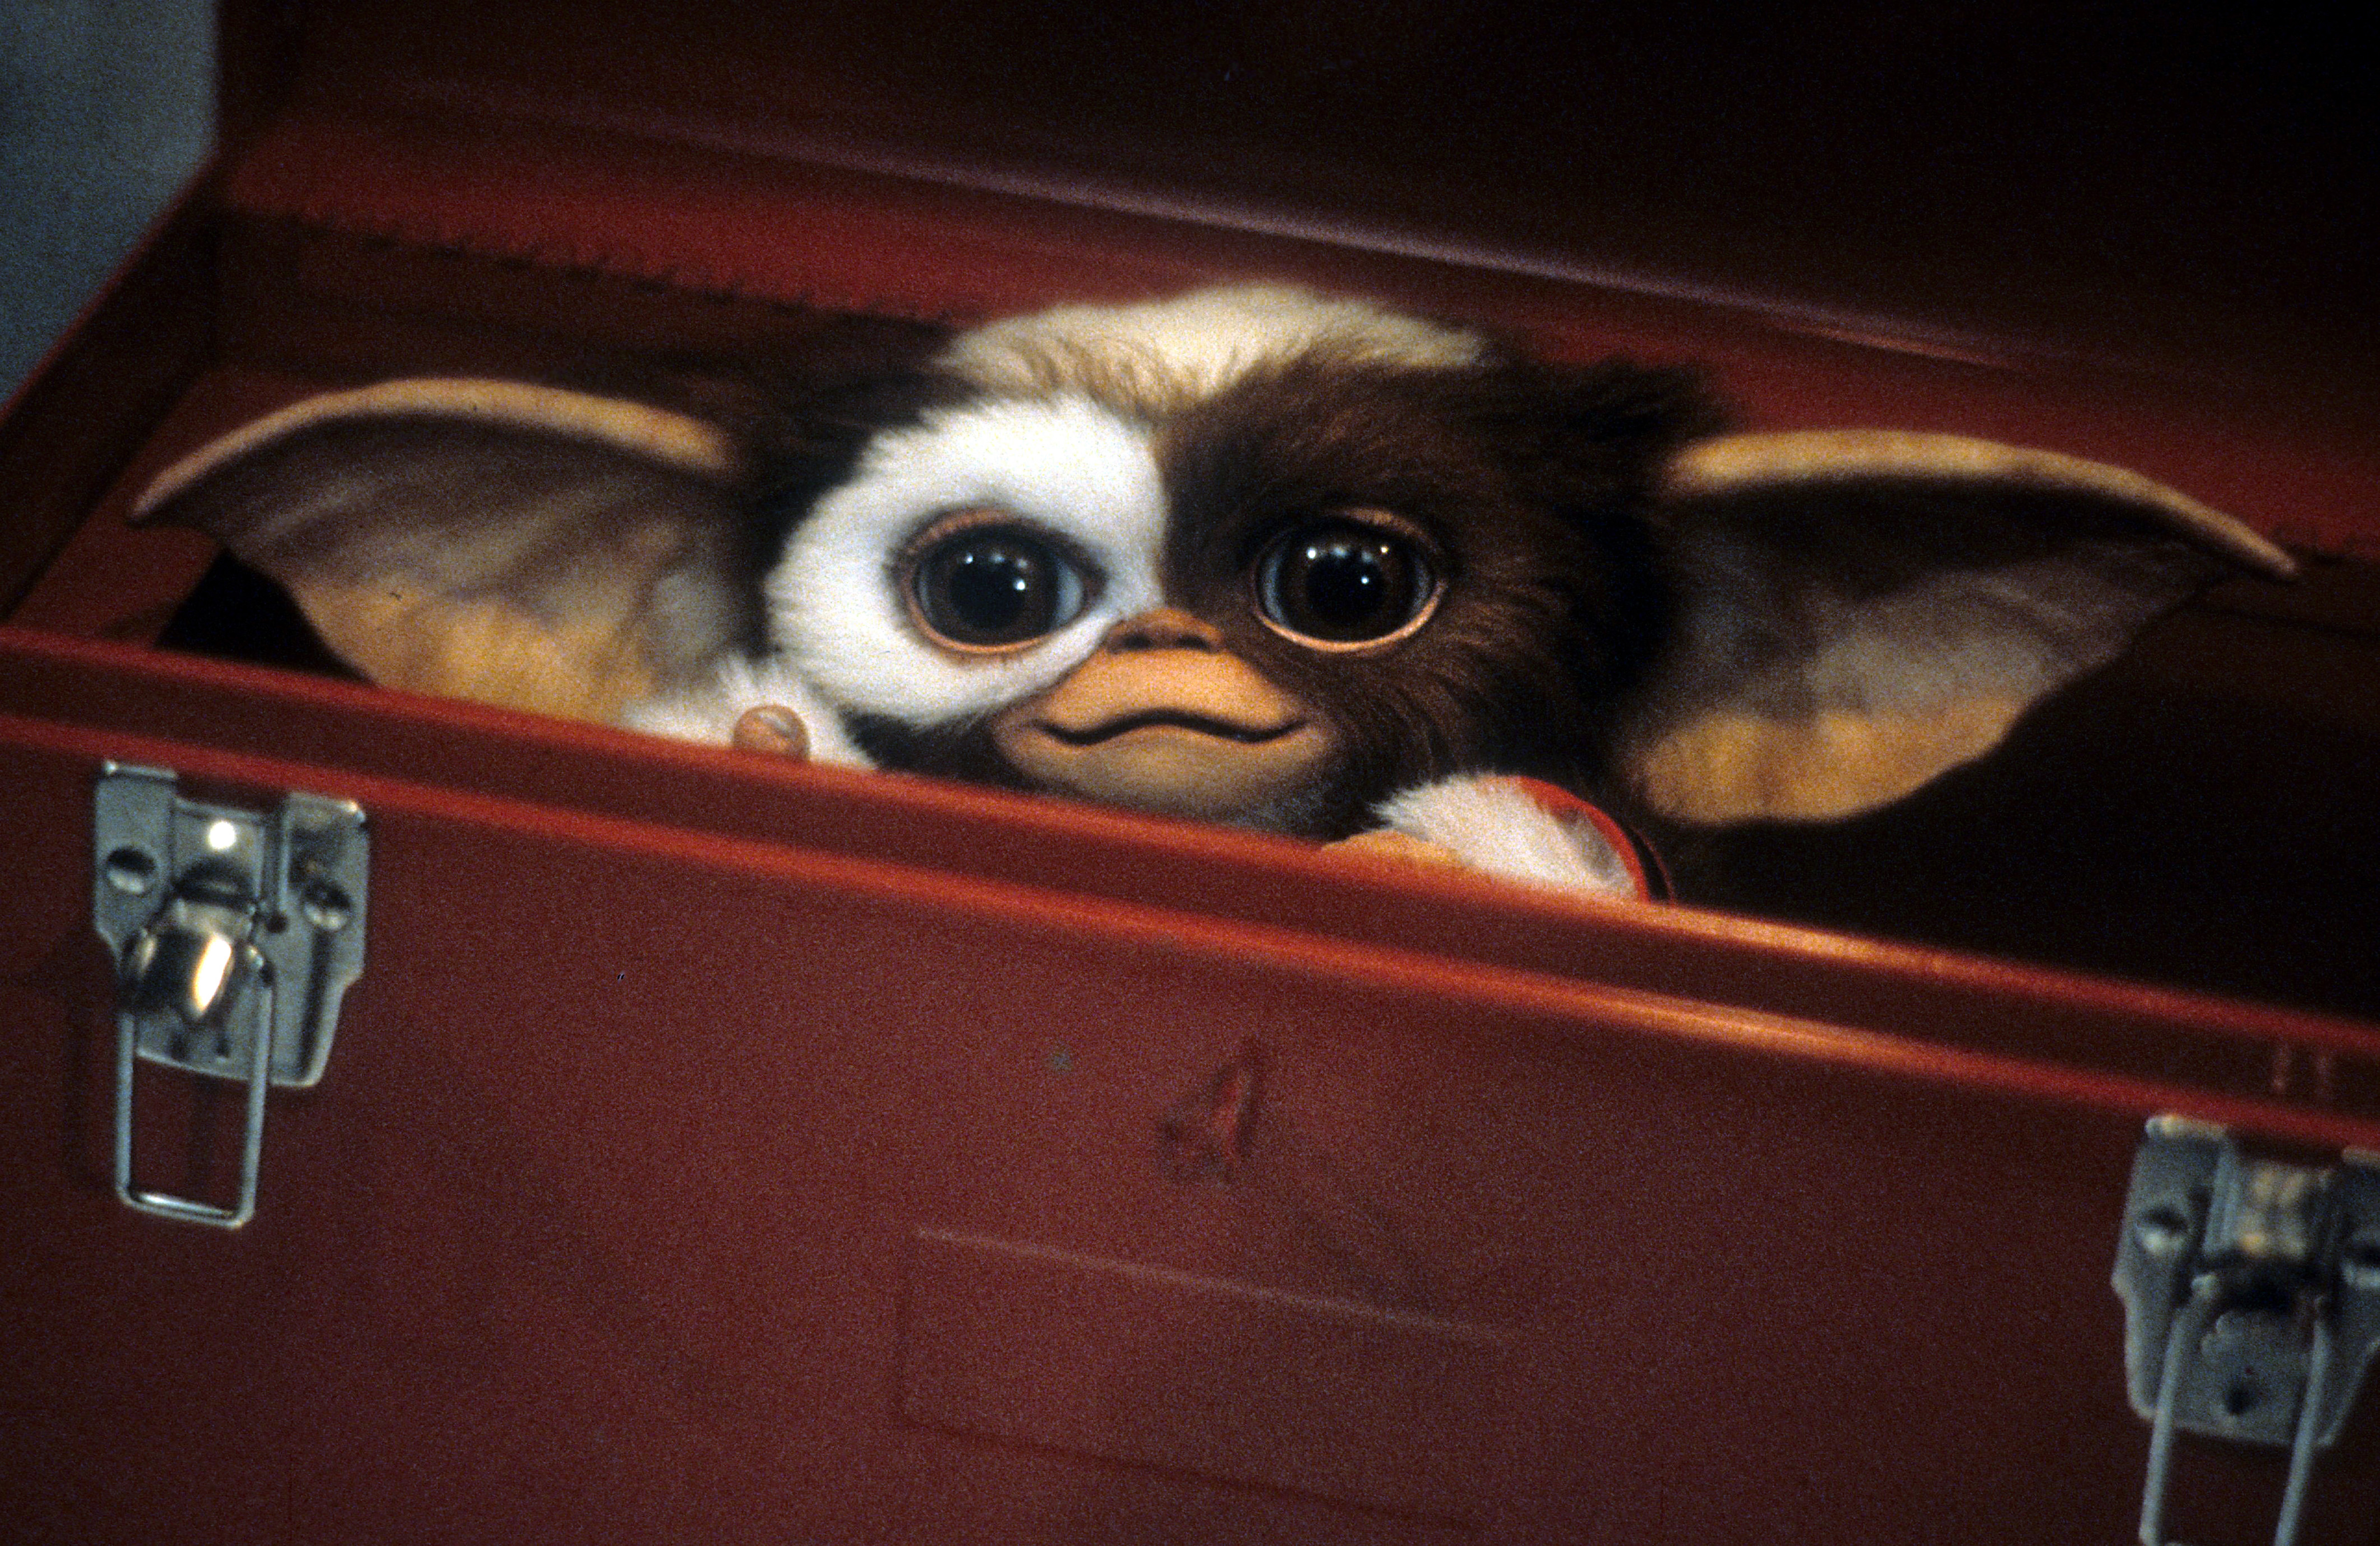 A scene from the film 'Gremlins', 1984.